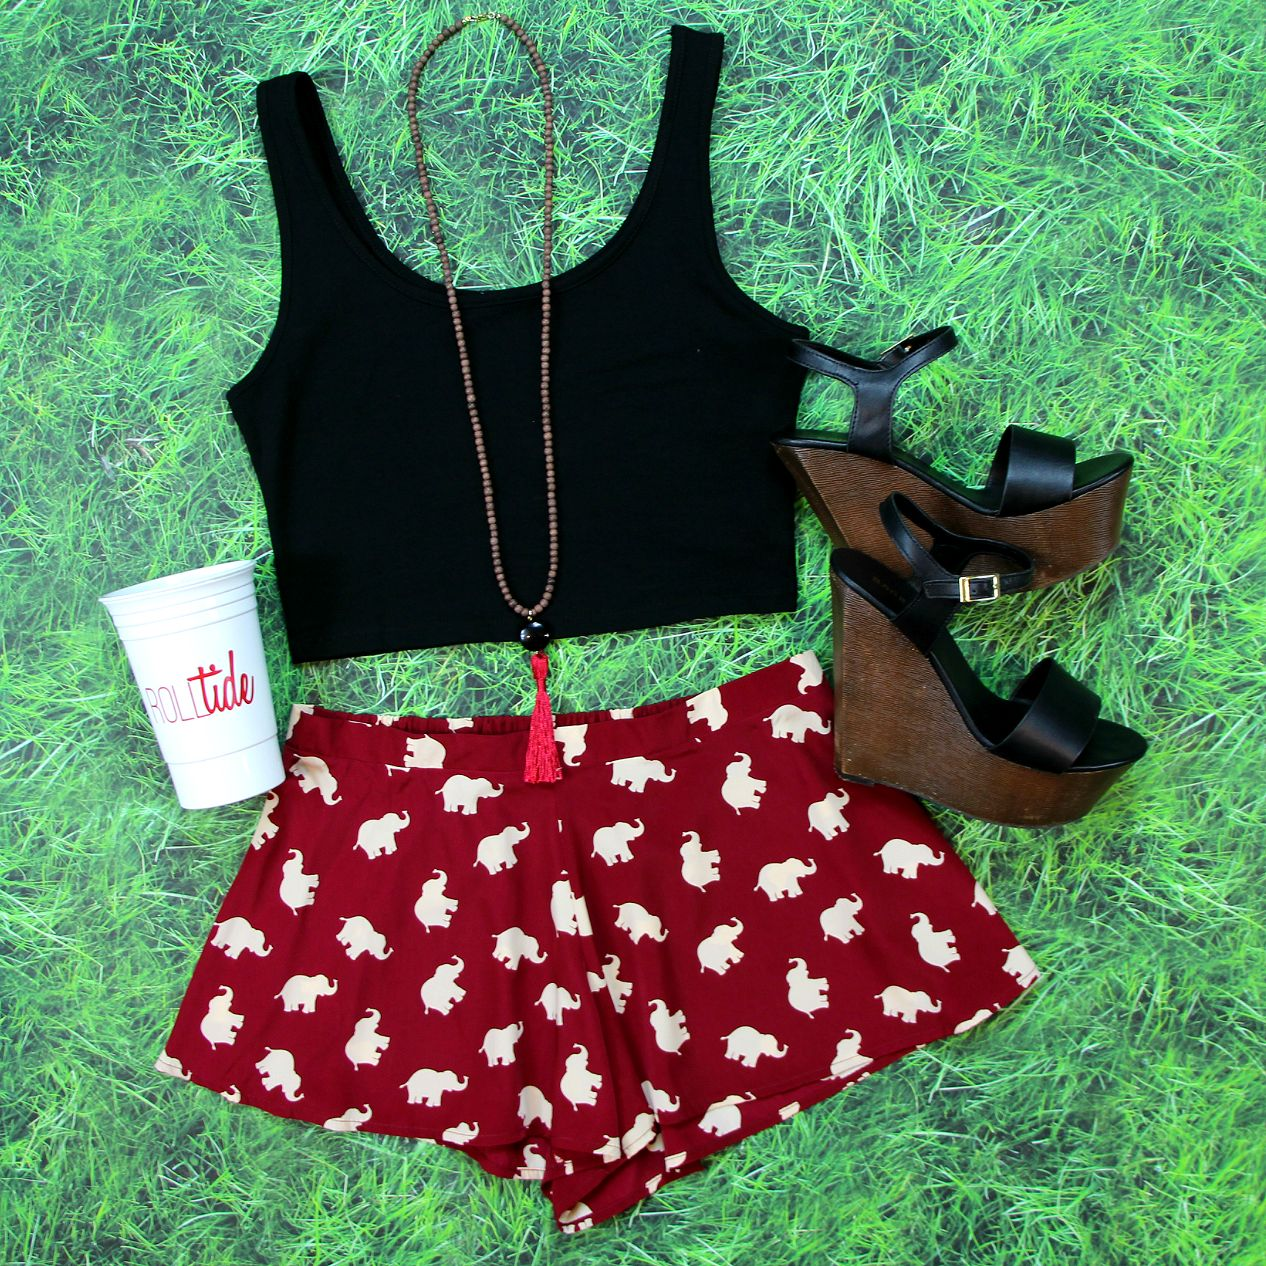 These Elephant Print Shorts in Burgundy are just $35! Shop them at Entourage before they're gone!